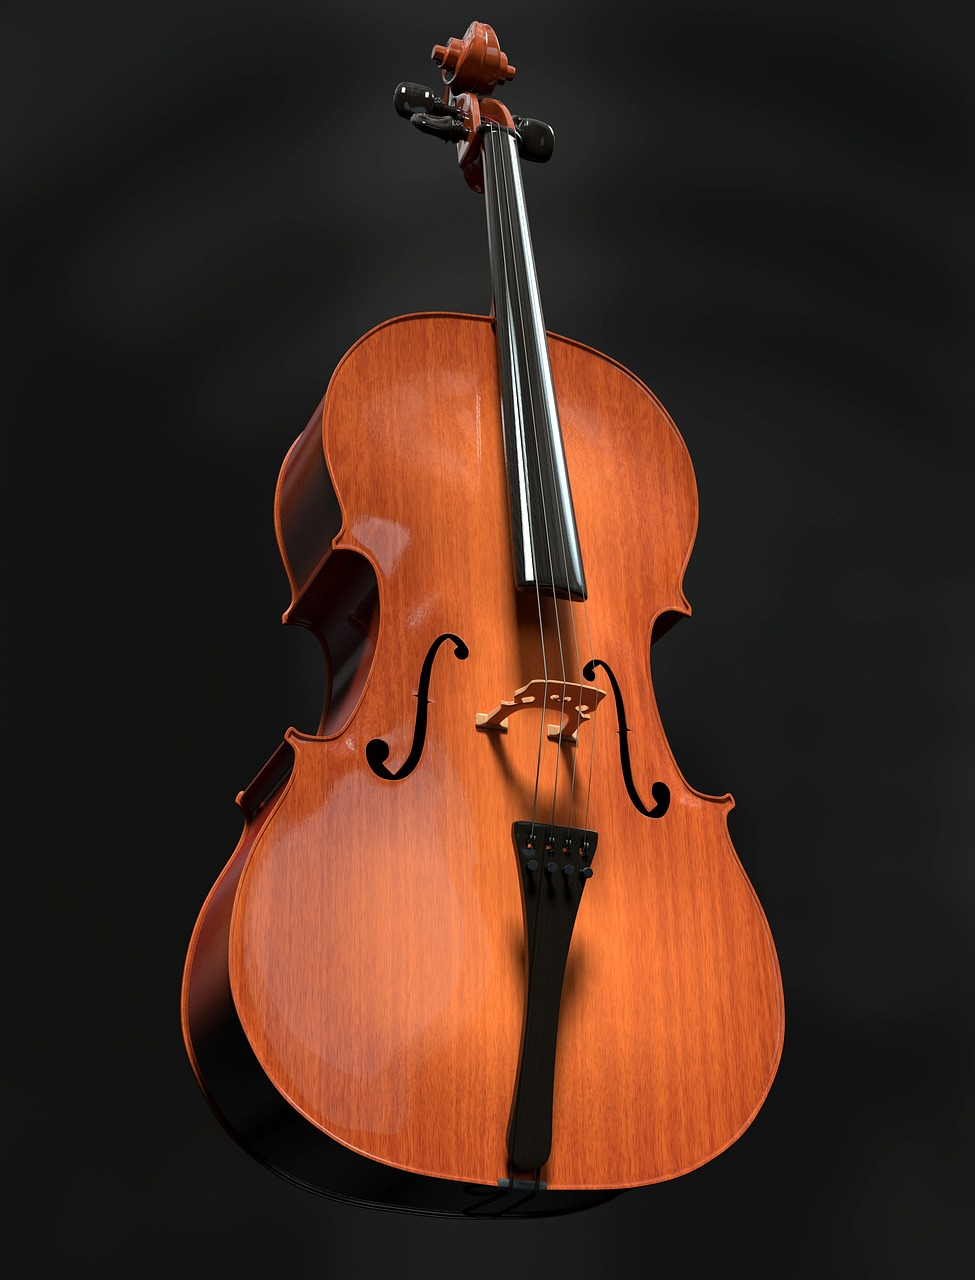 an introduction to viola an instrument from the violin family